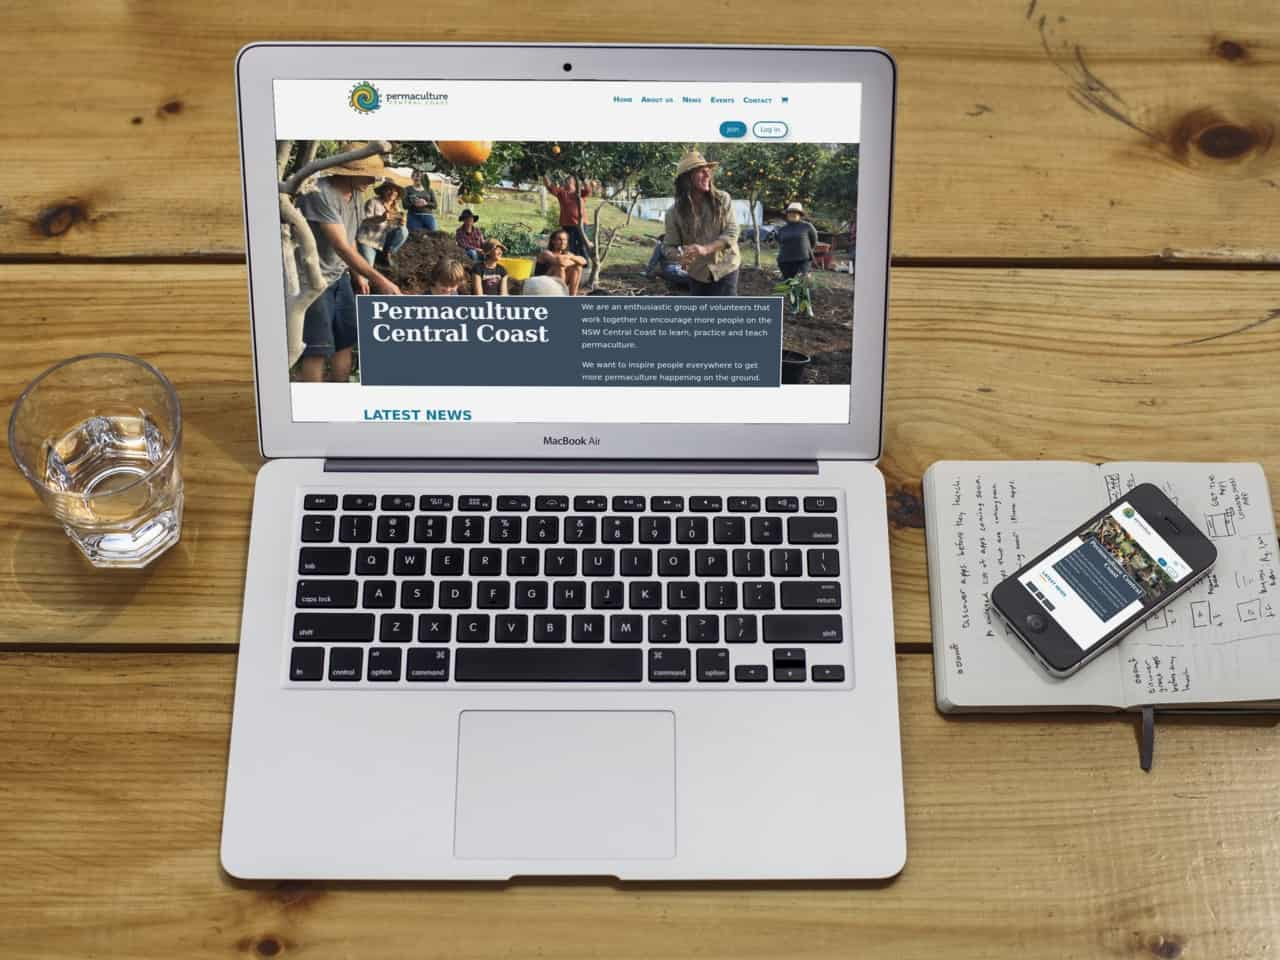 PCC website displayed on a laptop and a phone